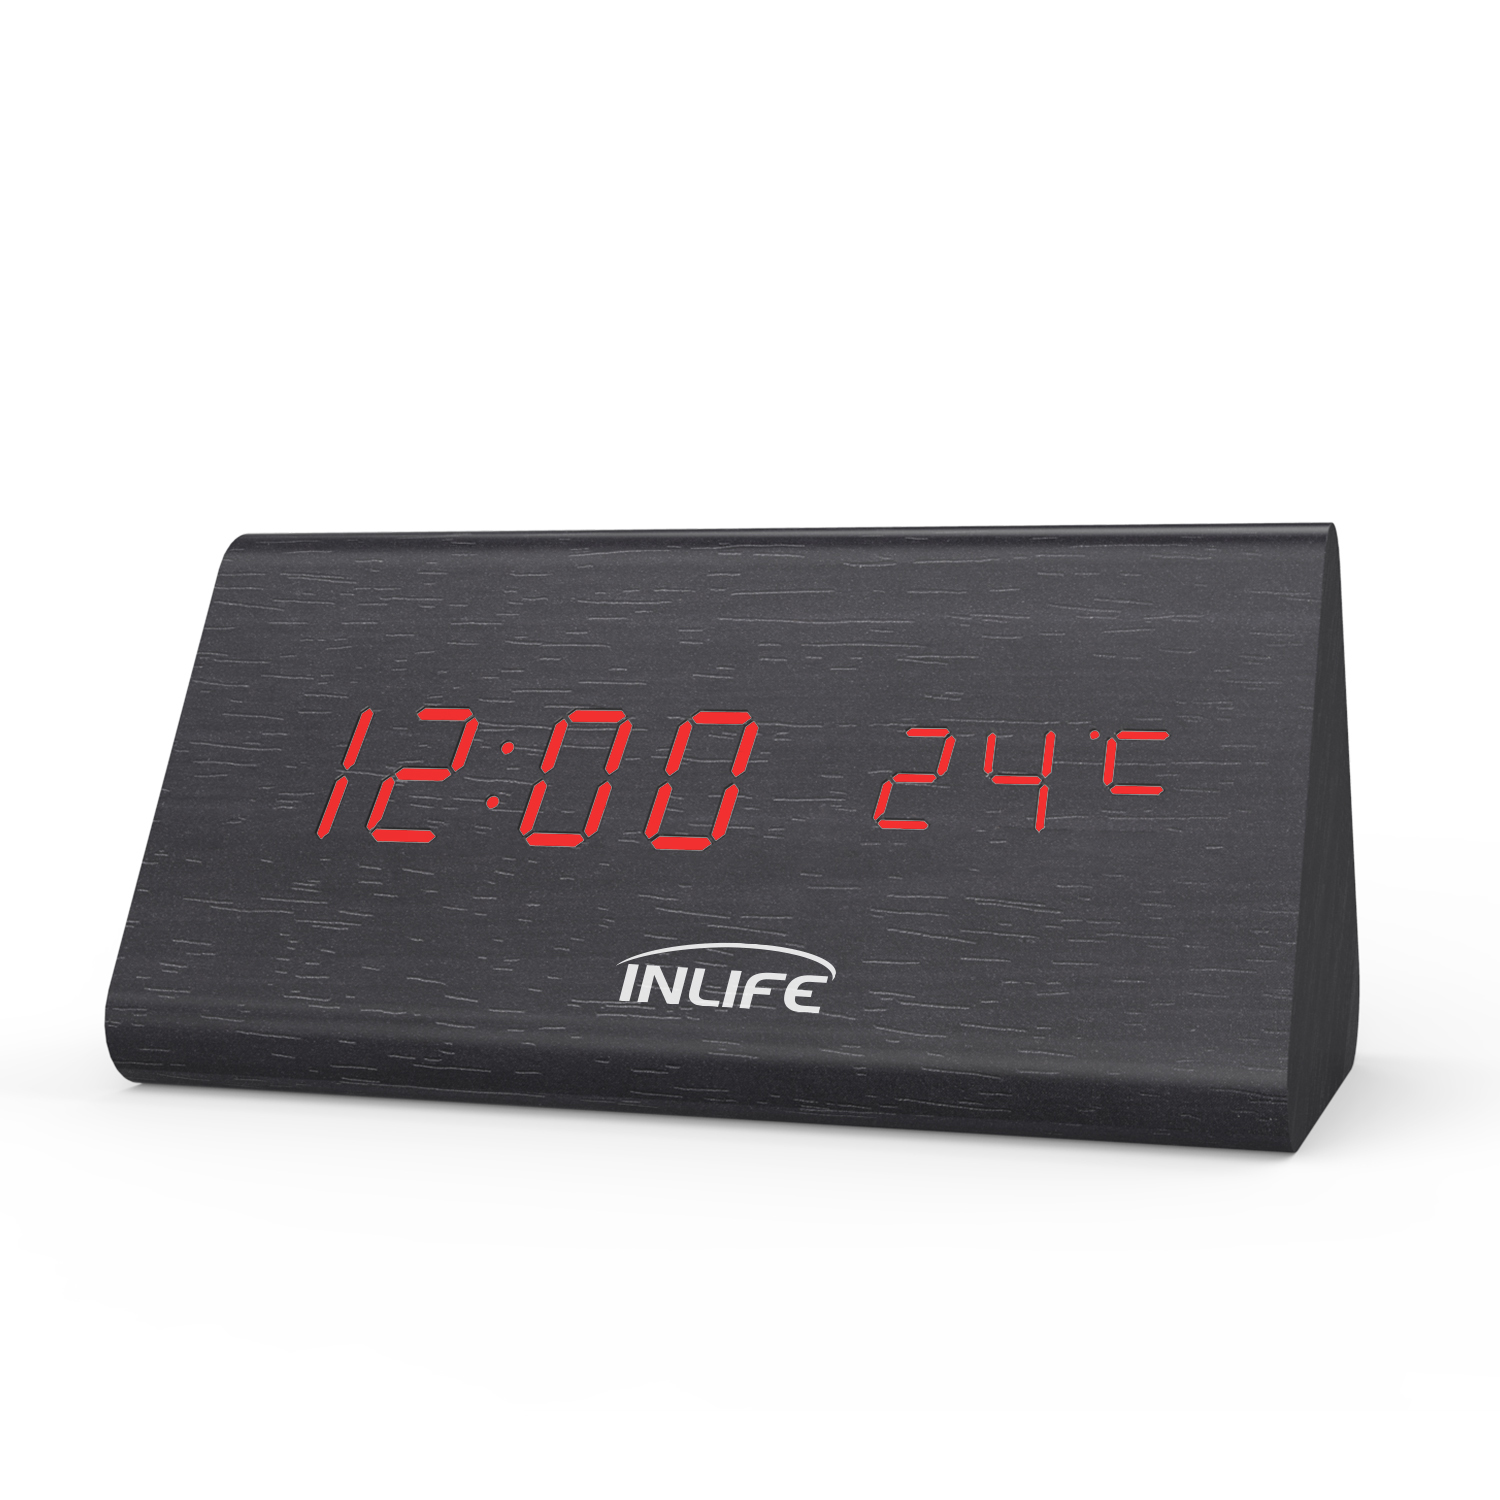 Inlife VST - 861 LED Wooden Digital Alarm Clock Display With Date Time Temperature 12/24 Hour Voice Control image